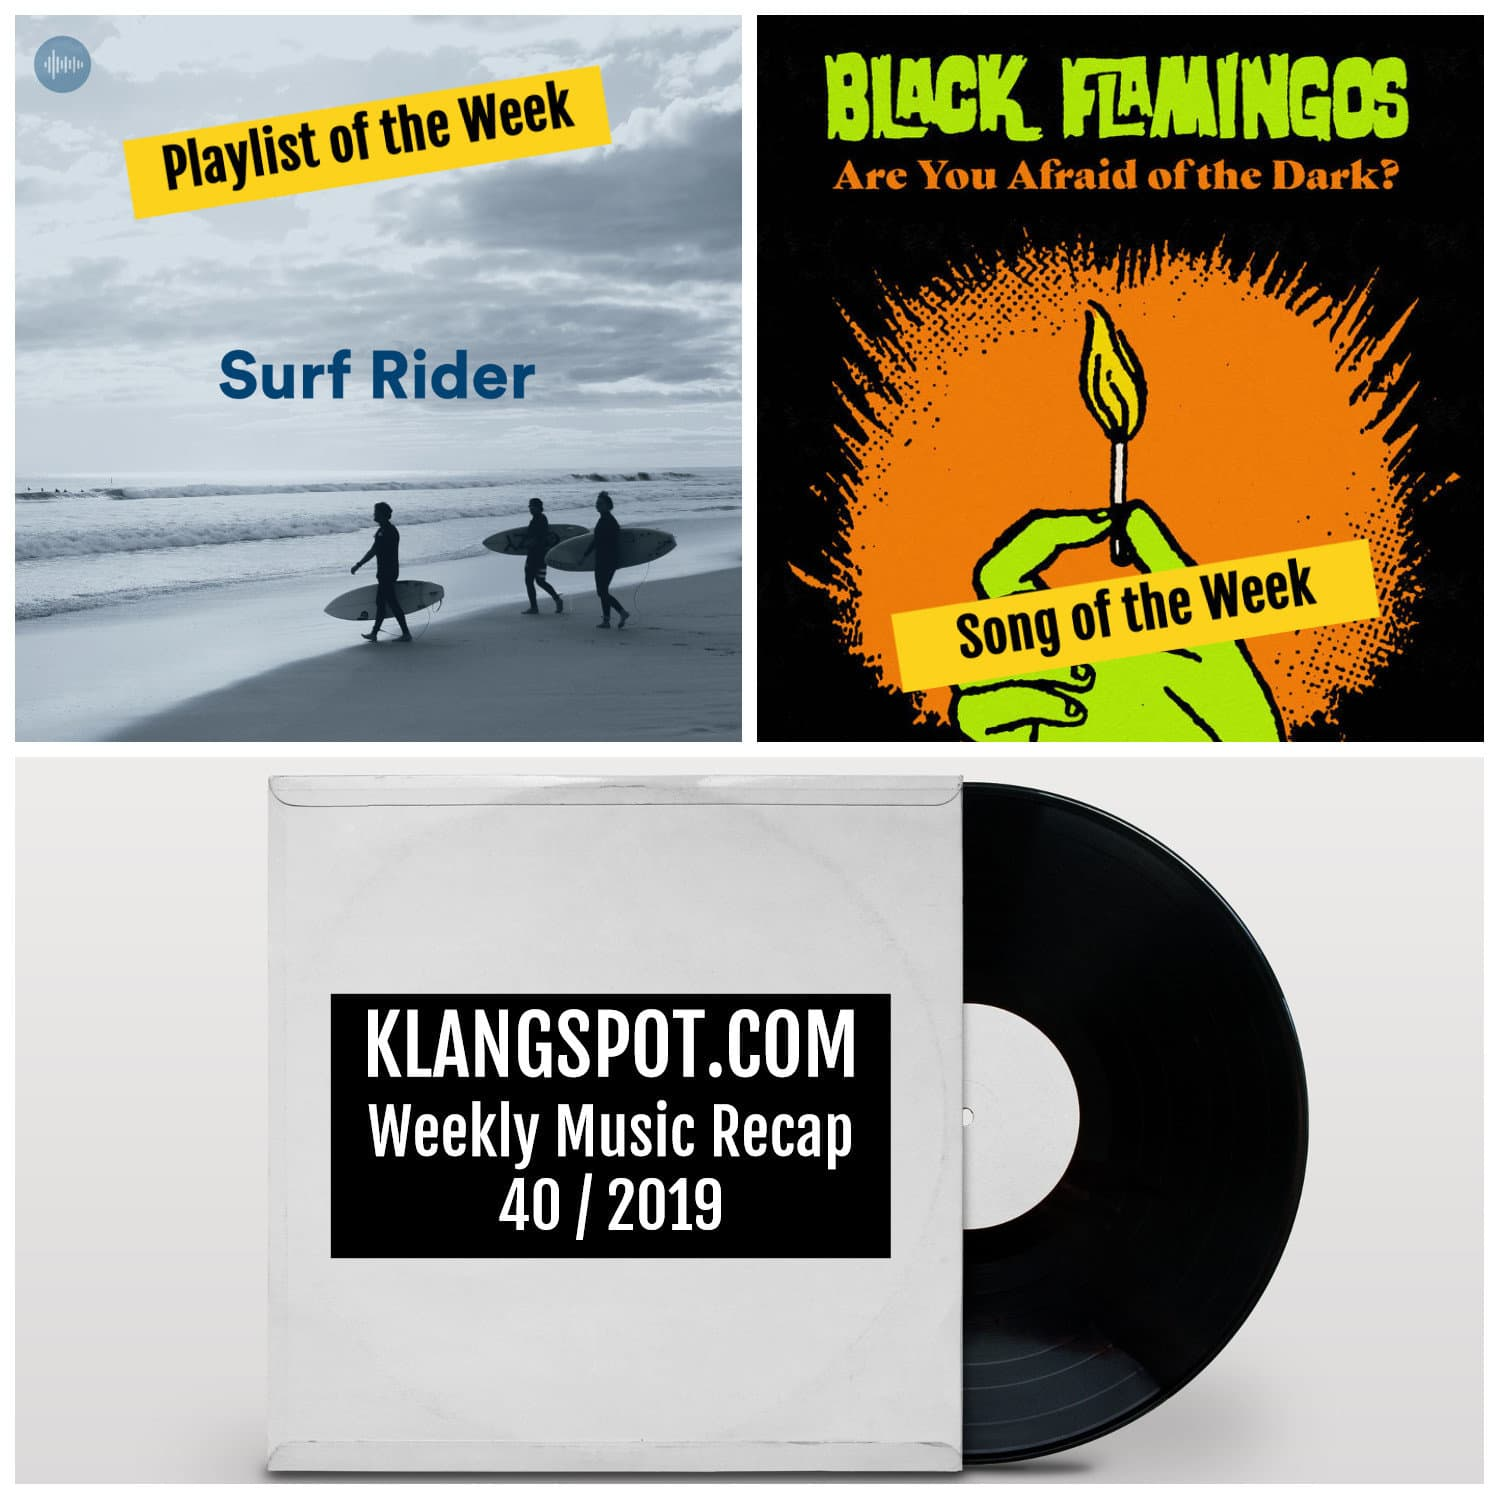 Weekly Music Recap 40/2019: Surf Rider / Black Flamingos - 'Are You Afraid of The Dark?'